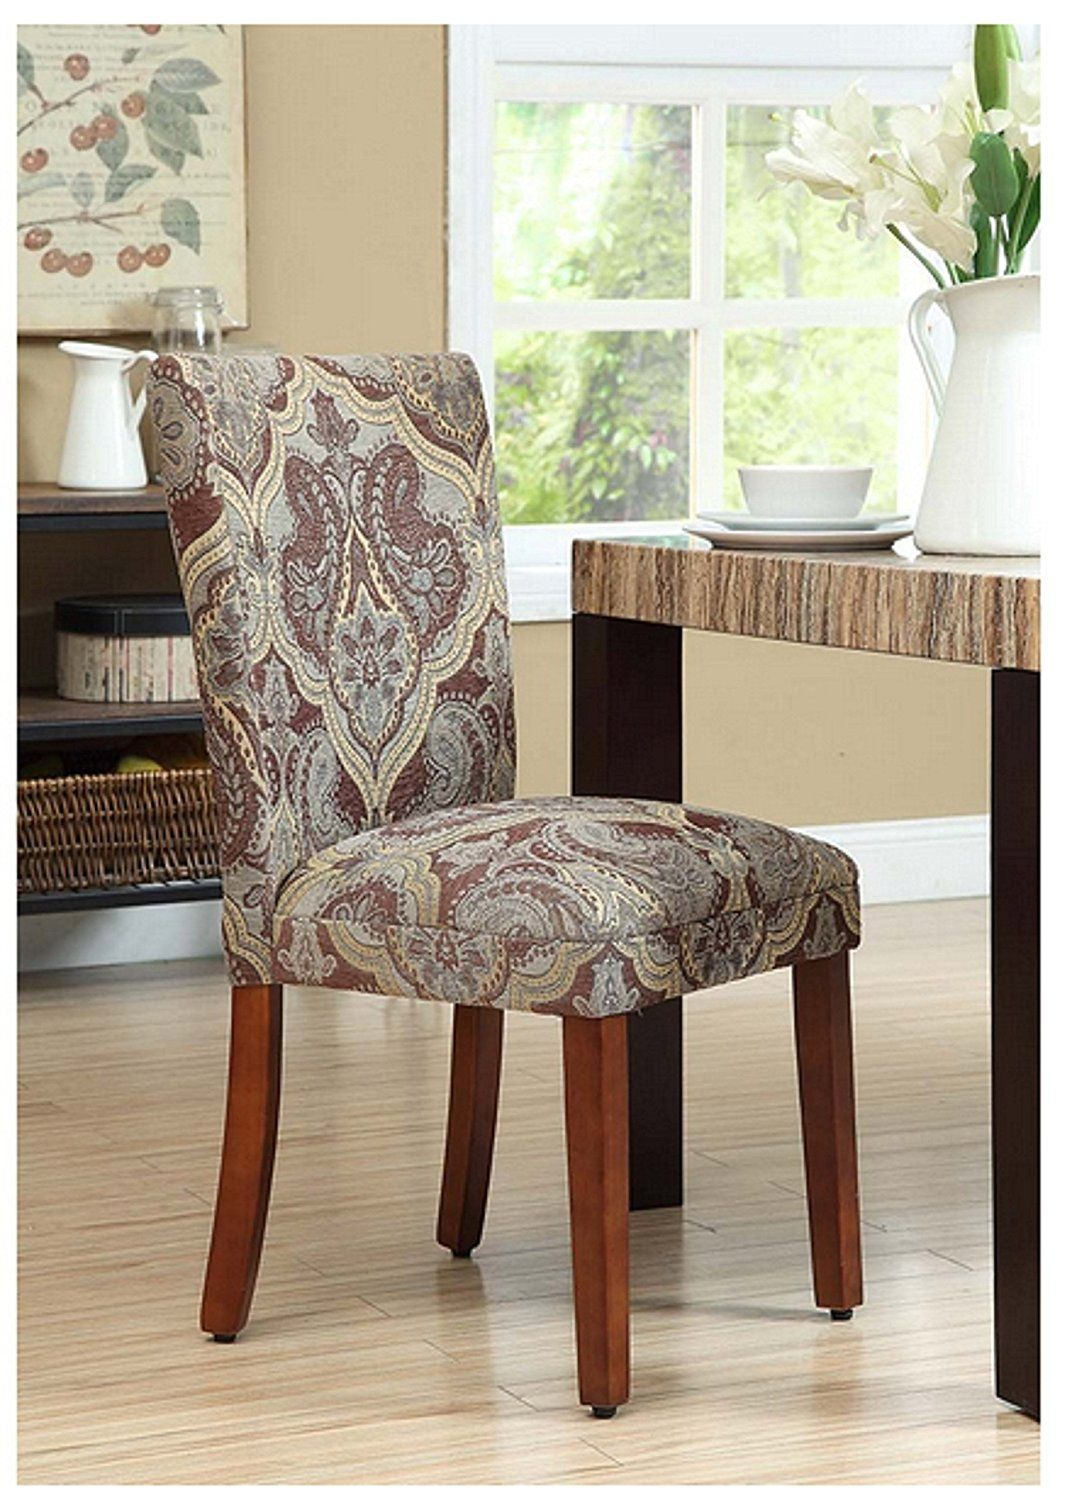 Amazon.com - Parsons Dining Chairs Upholstered Chairs ...